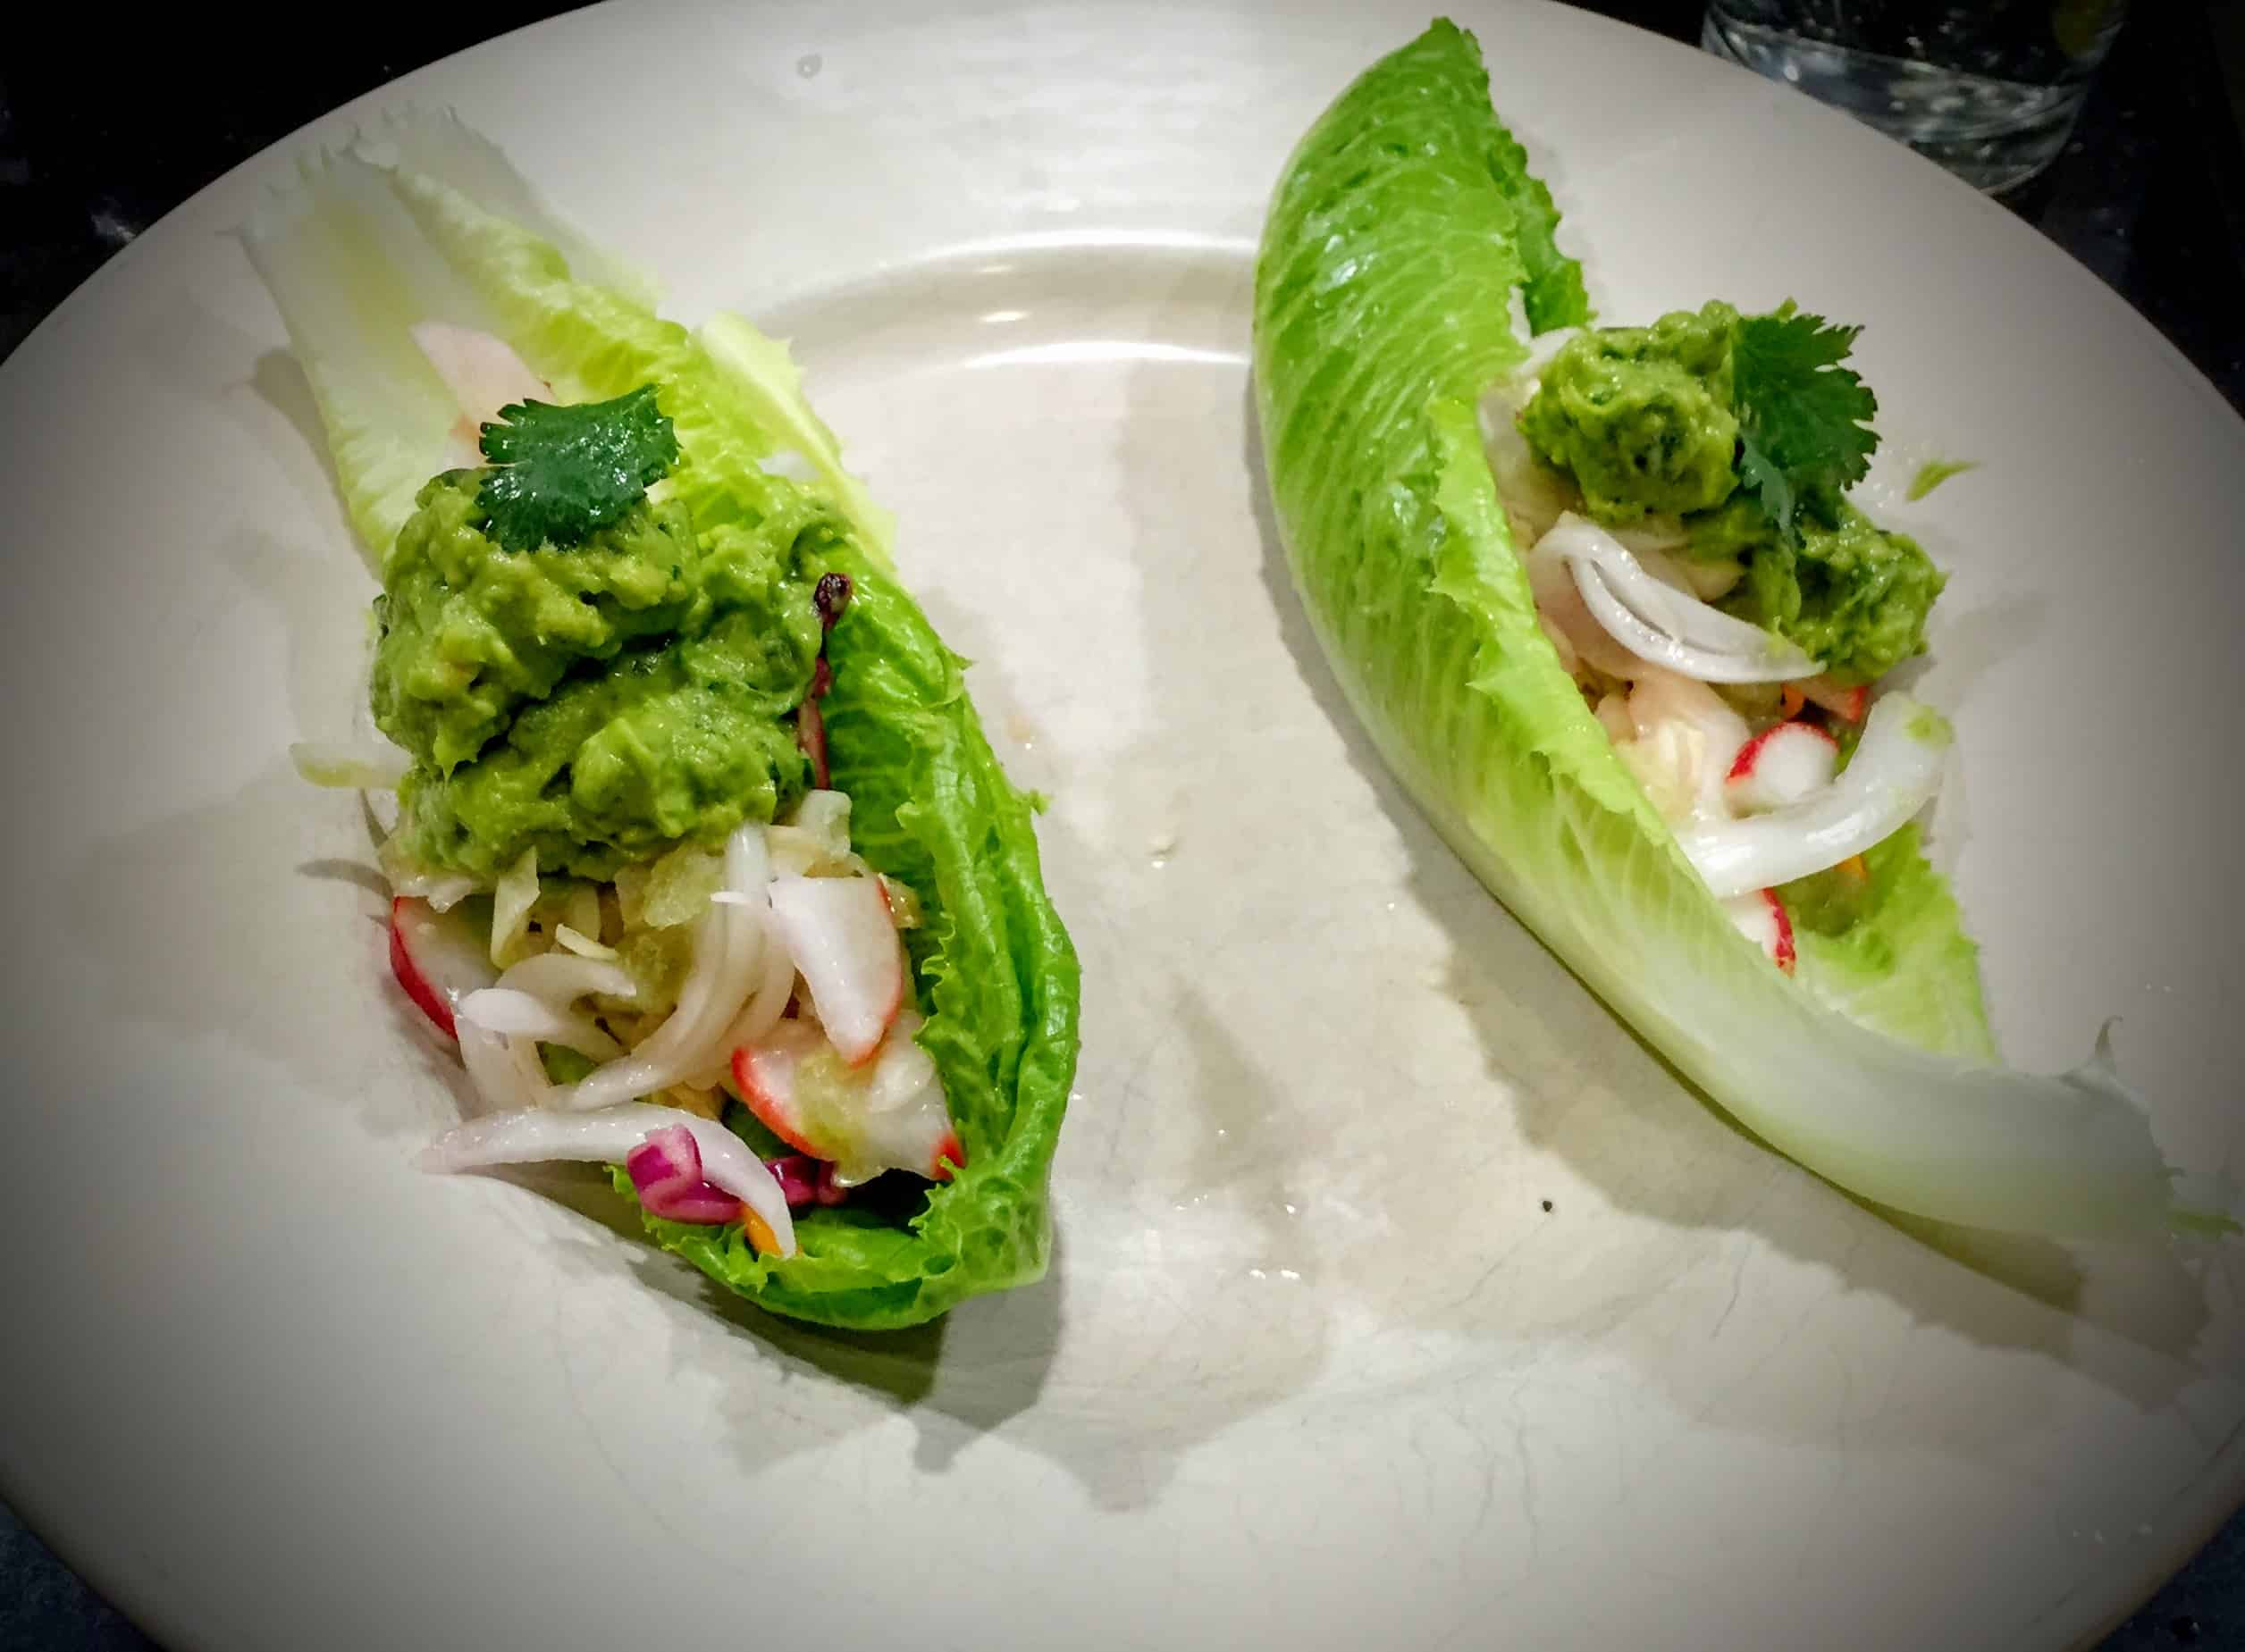 These fresh lime juice infused fish tacos are quick to make and incredibly satisfying. Not to mention healthy and very low in calories. Lime Juice is used as a base for all components, from the baked Cod with Lime-Cumin Sauce, Cabbage Radish Slaw with Lime Vinaigrette and Lime Juice based Fresh Guacamole. They are a wonderful weekday treat.